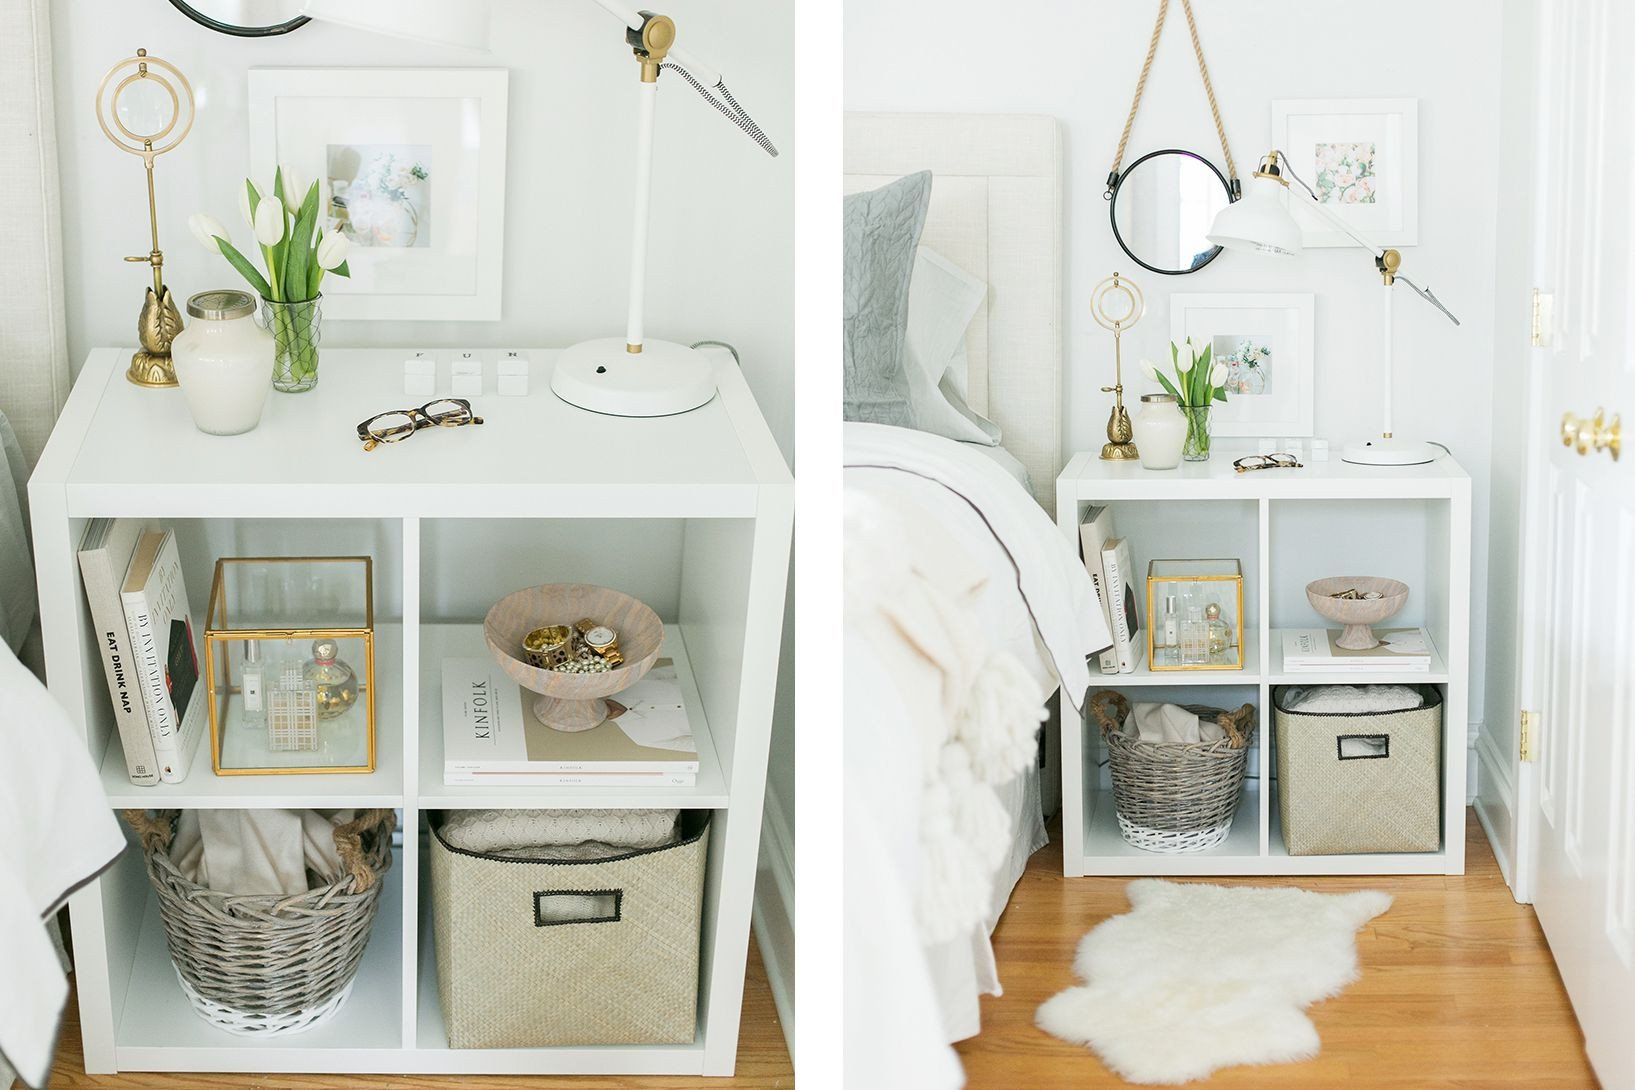 Bedroom Storage Ideas for Small Rooms Unique 21 Best Ikea Storage Hacks for Small Bedrooms